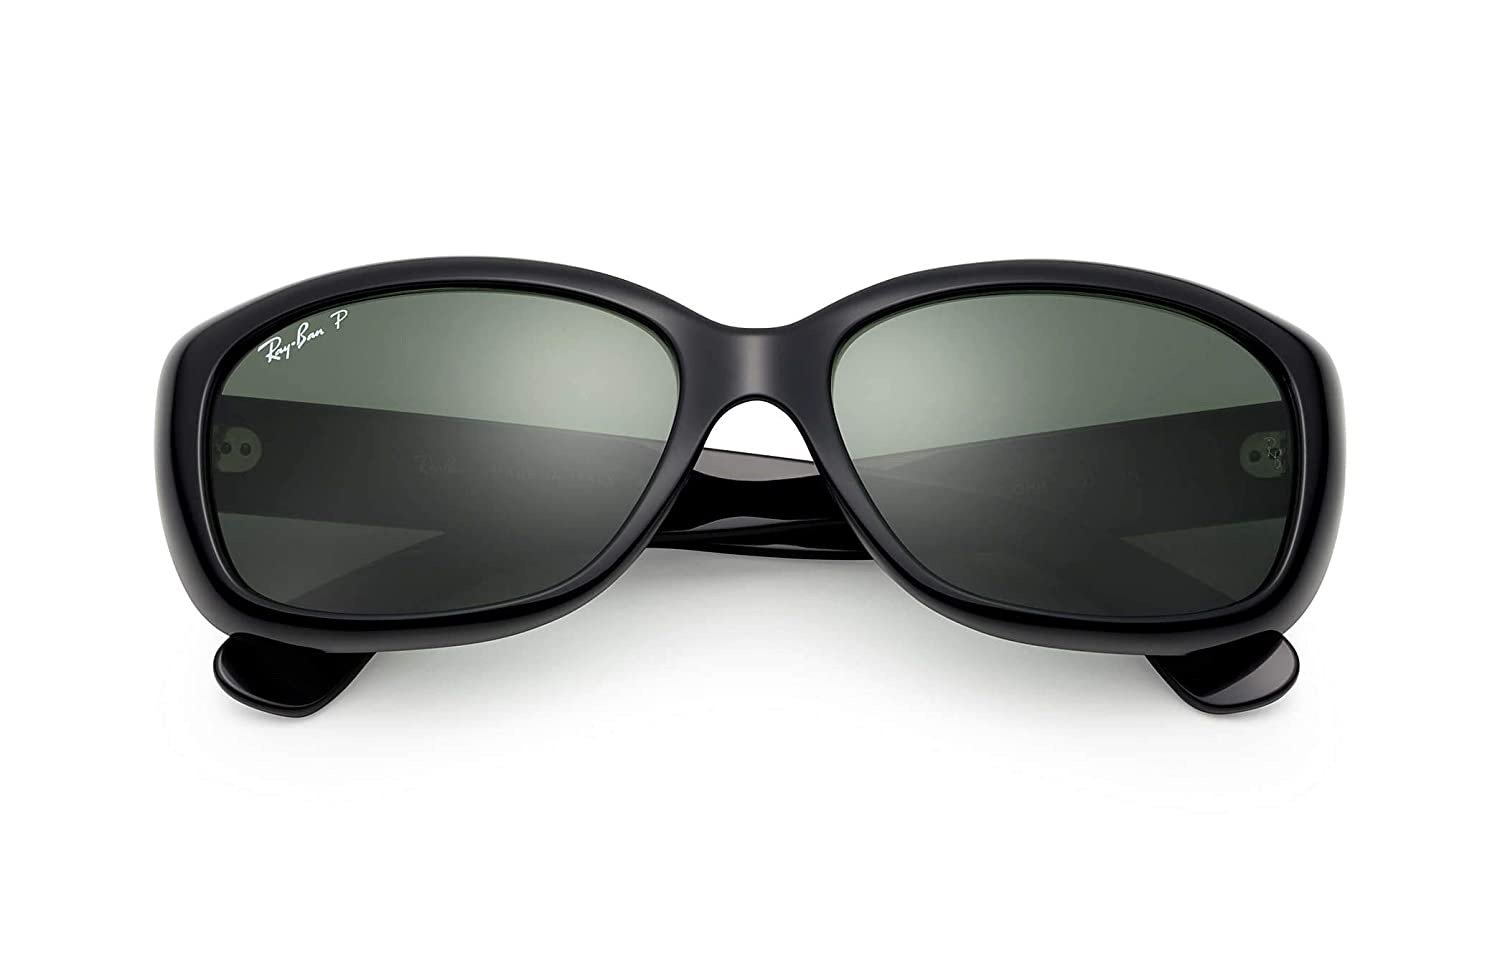 bca34492796 Amazon.com  Ray Ban RB4101 601 58mm Black Crystal Green Jackie Ohh  Sunglasses Bundle-2 Items  Clothing